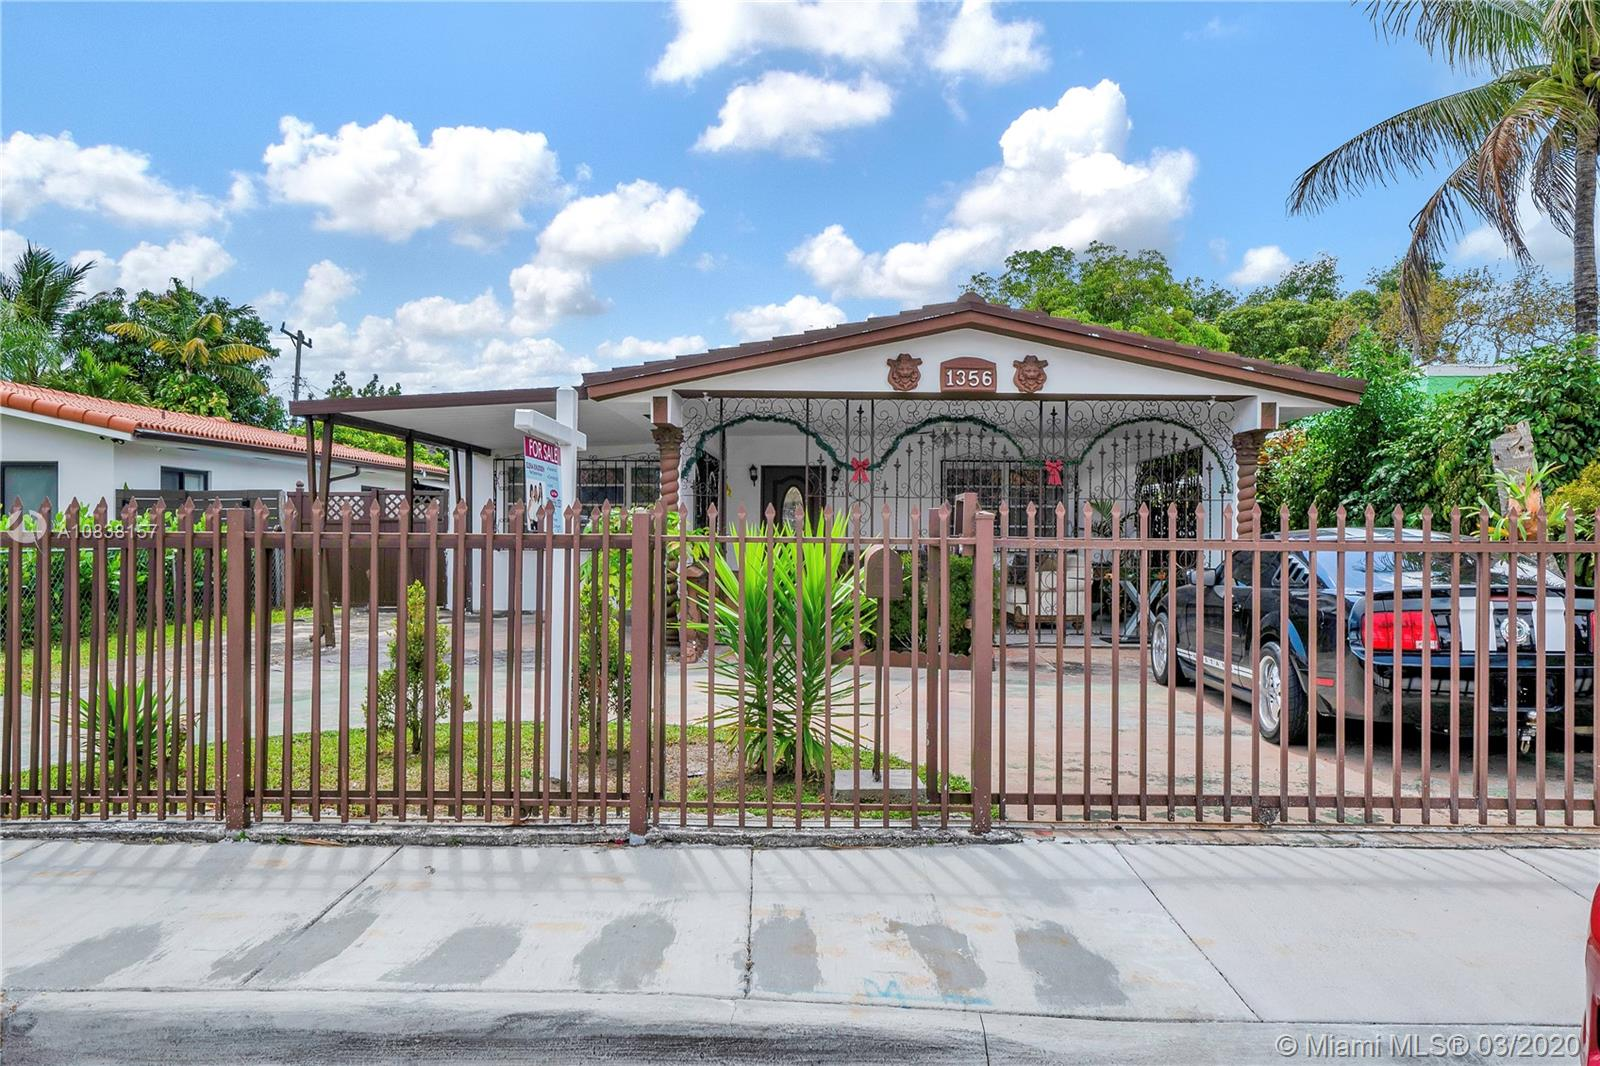 1356 SW 15th St, Coral Gables, Florida